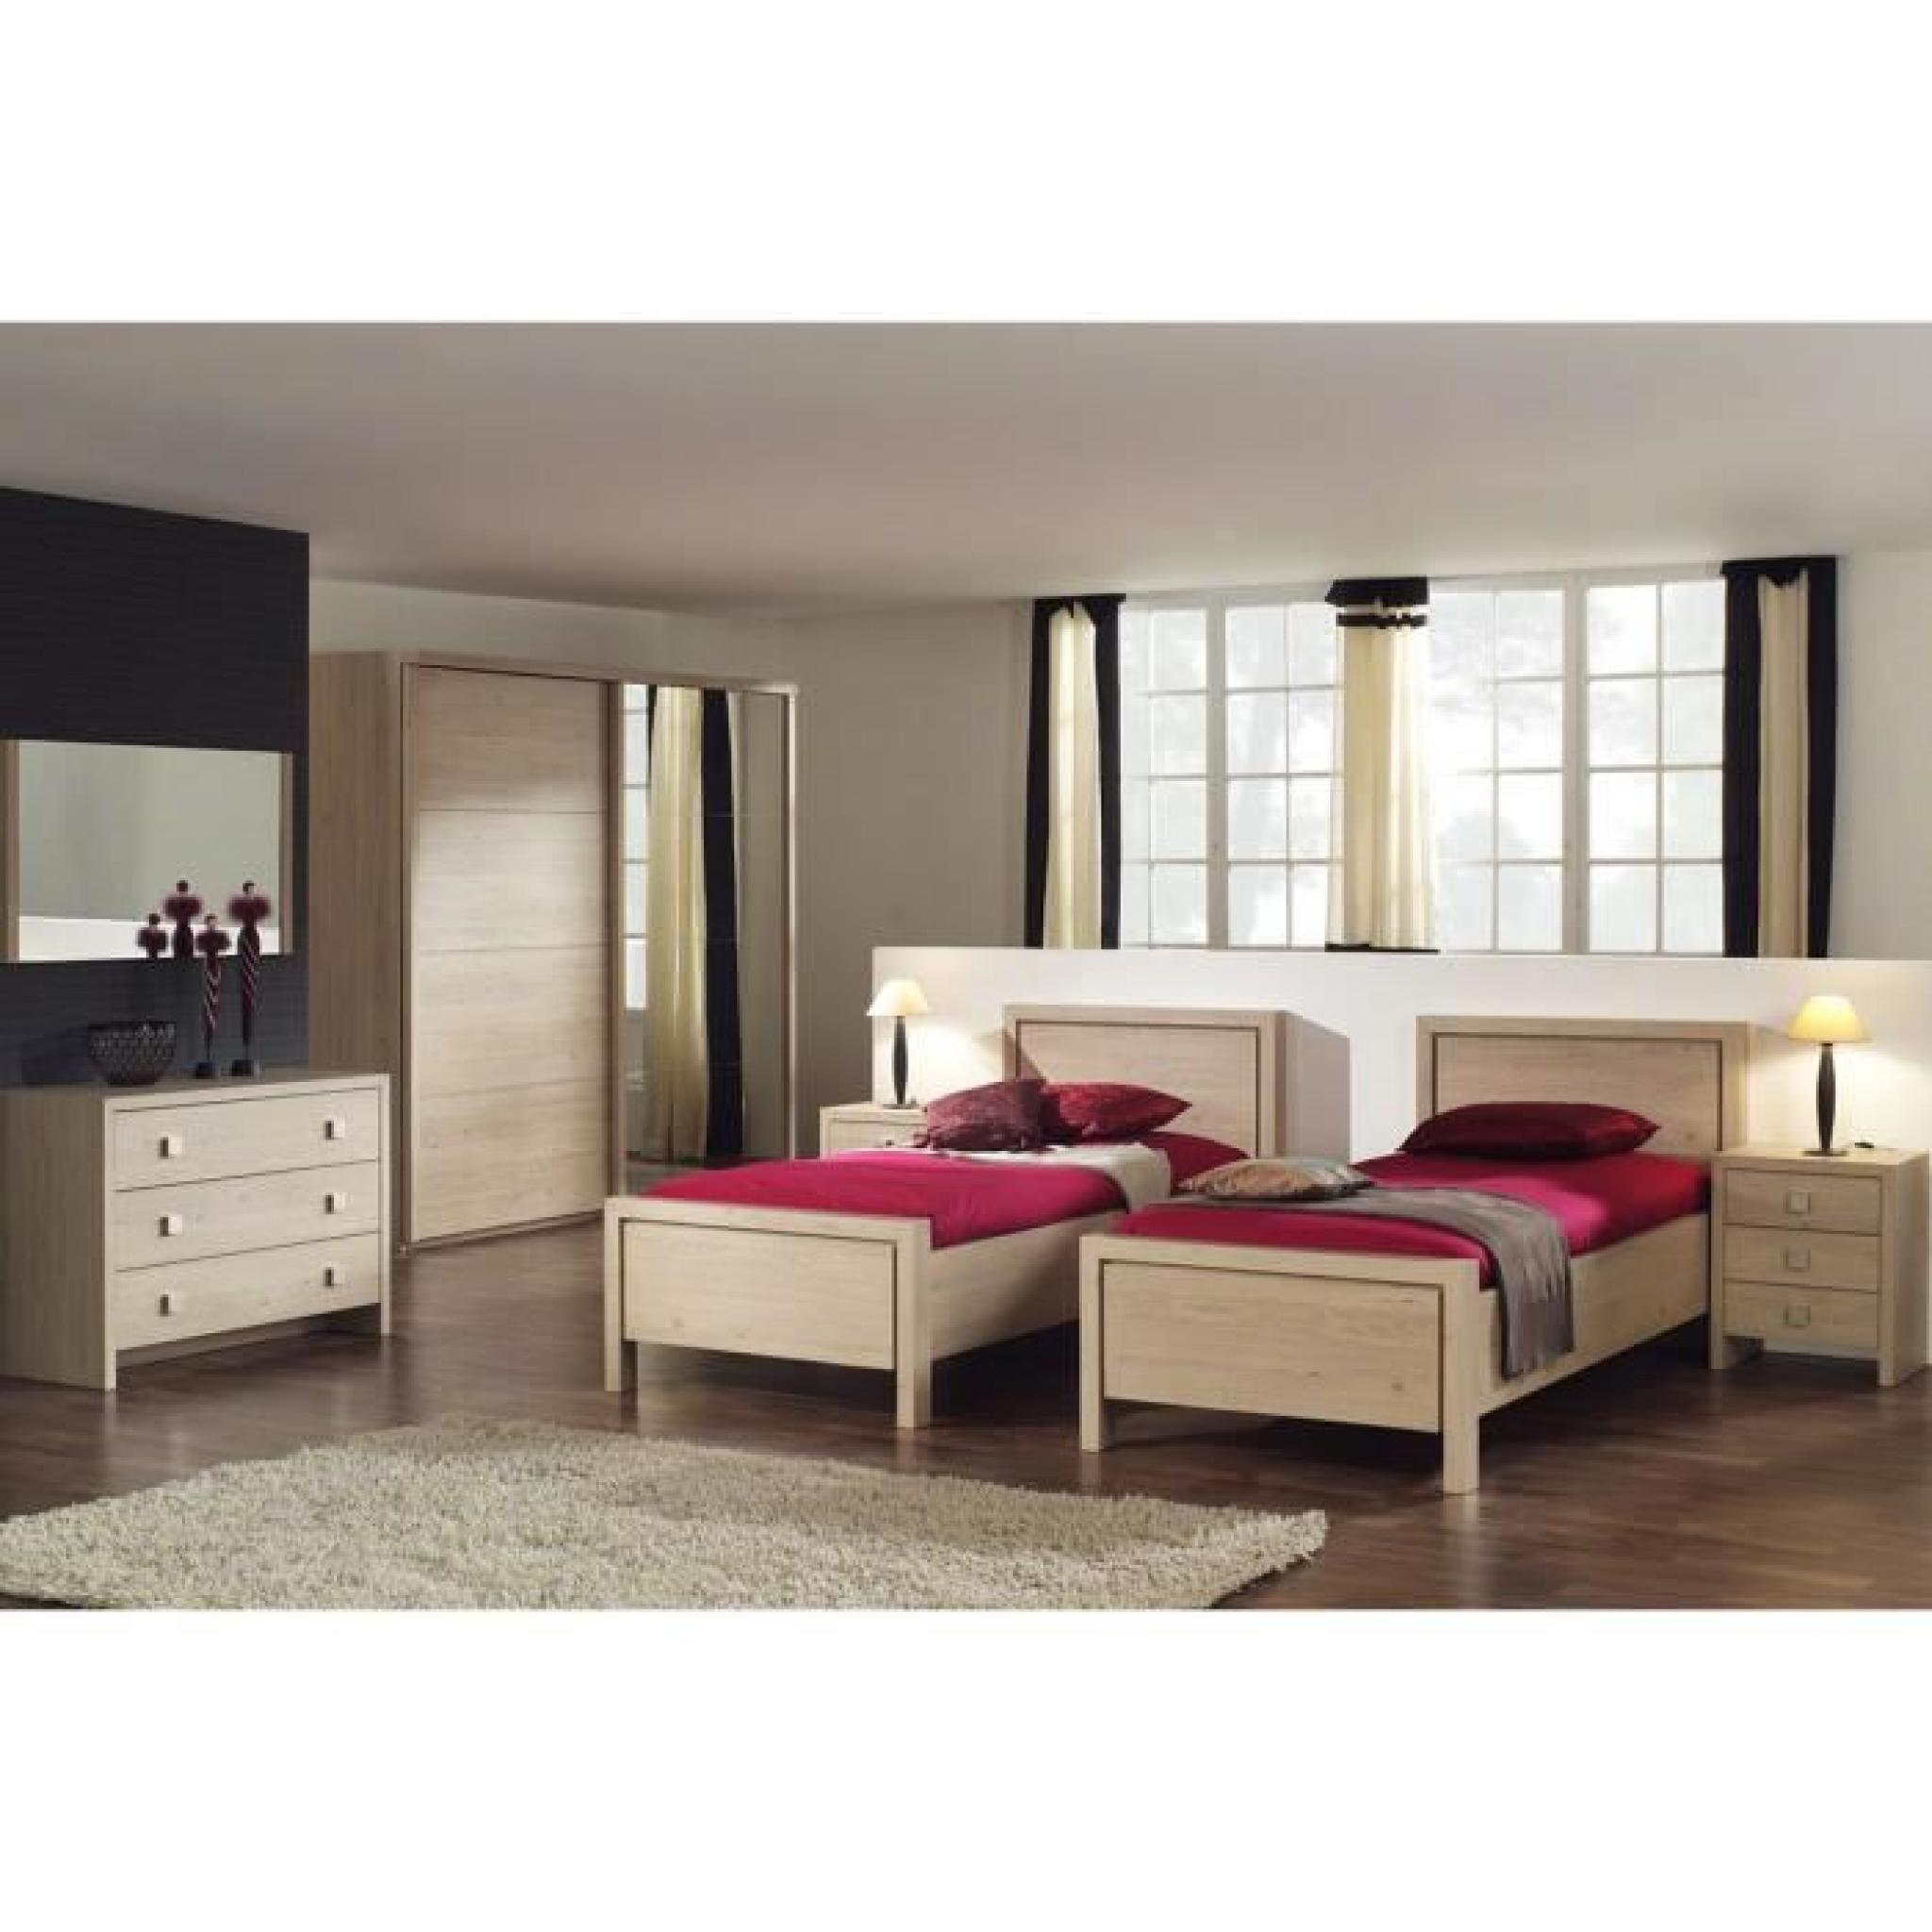 lit 90x200 coloris ch ne achat vente lit pas cher couleur et. Black Bedroom Furniture Sets. Home Design Ideas